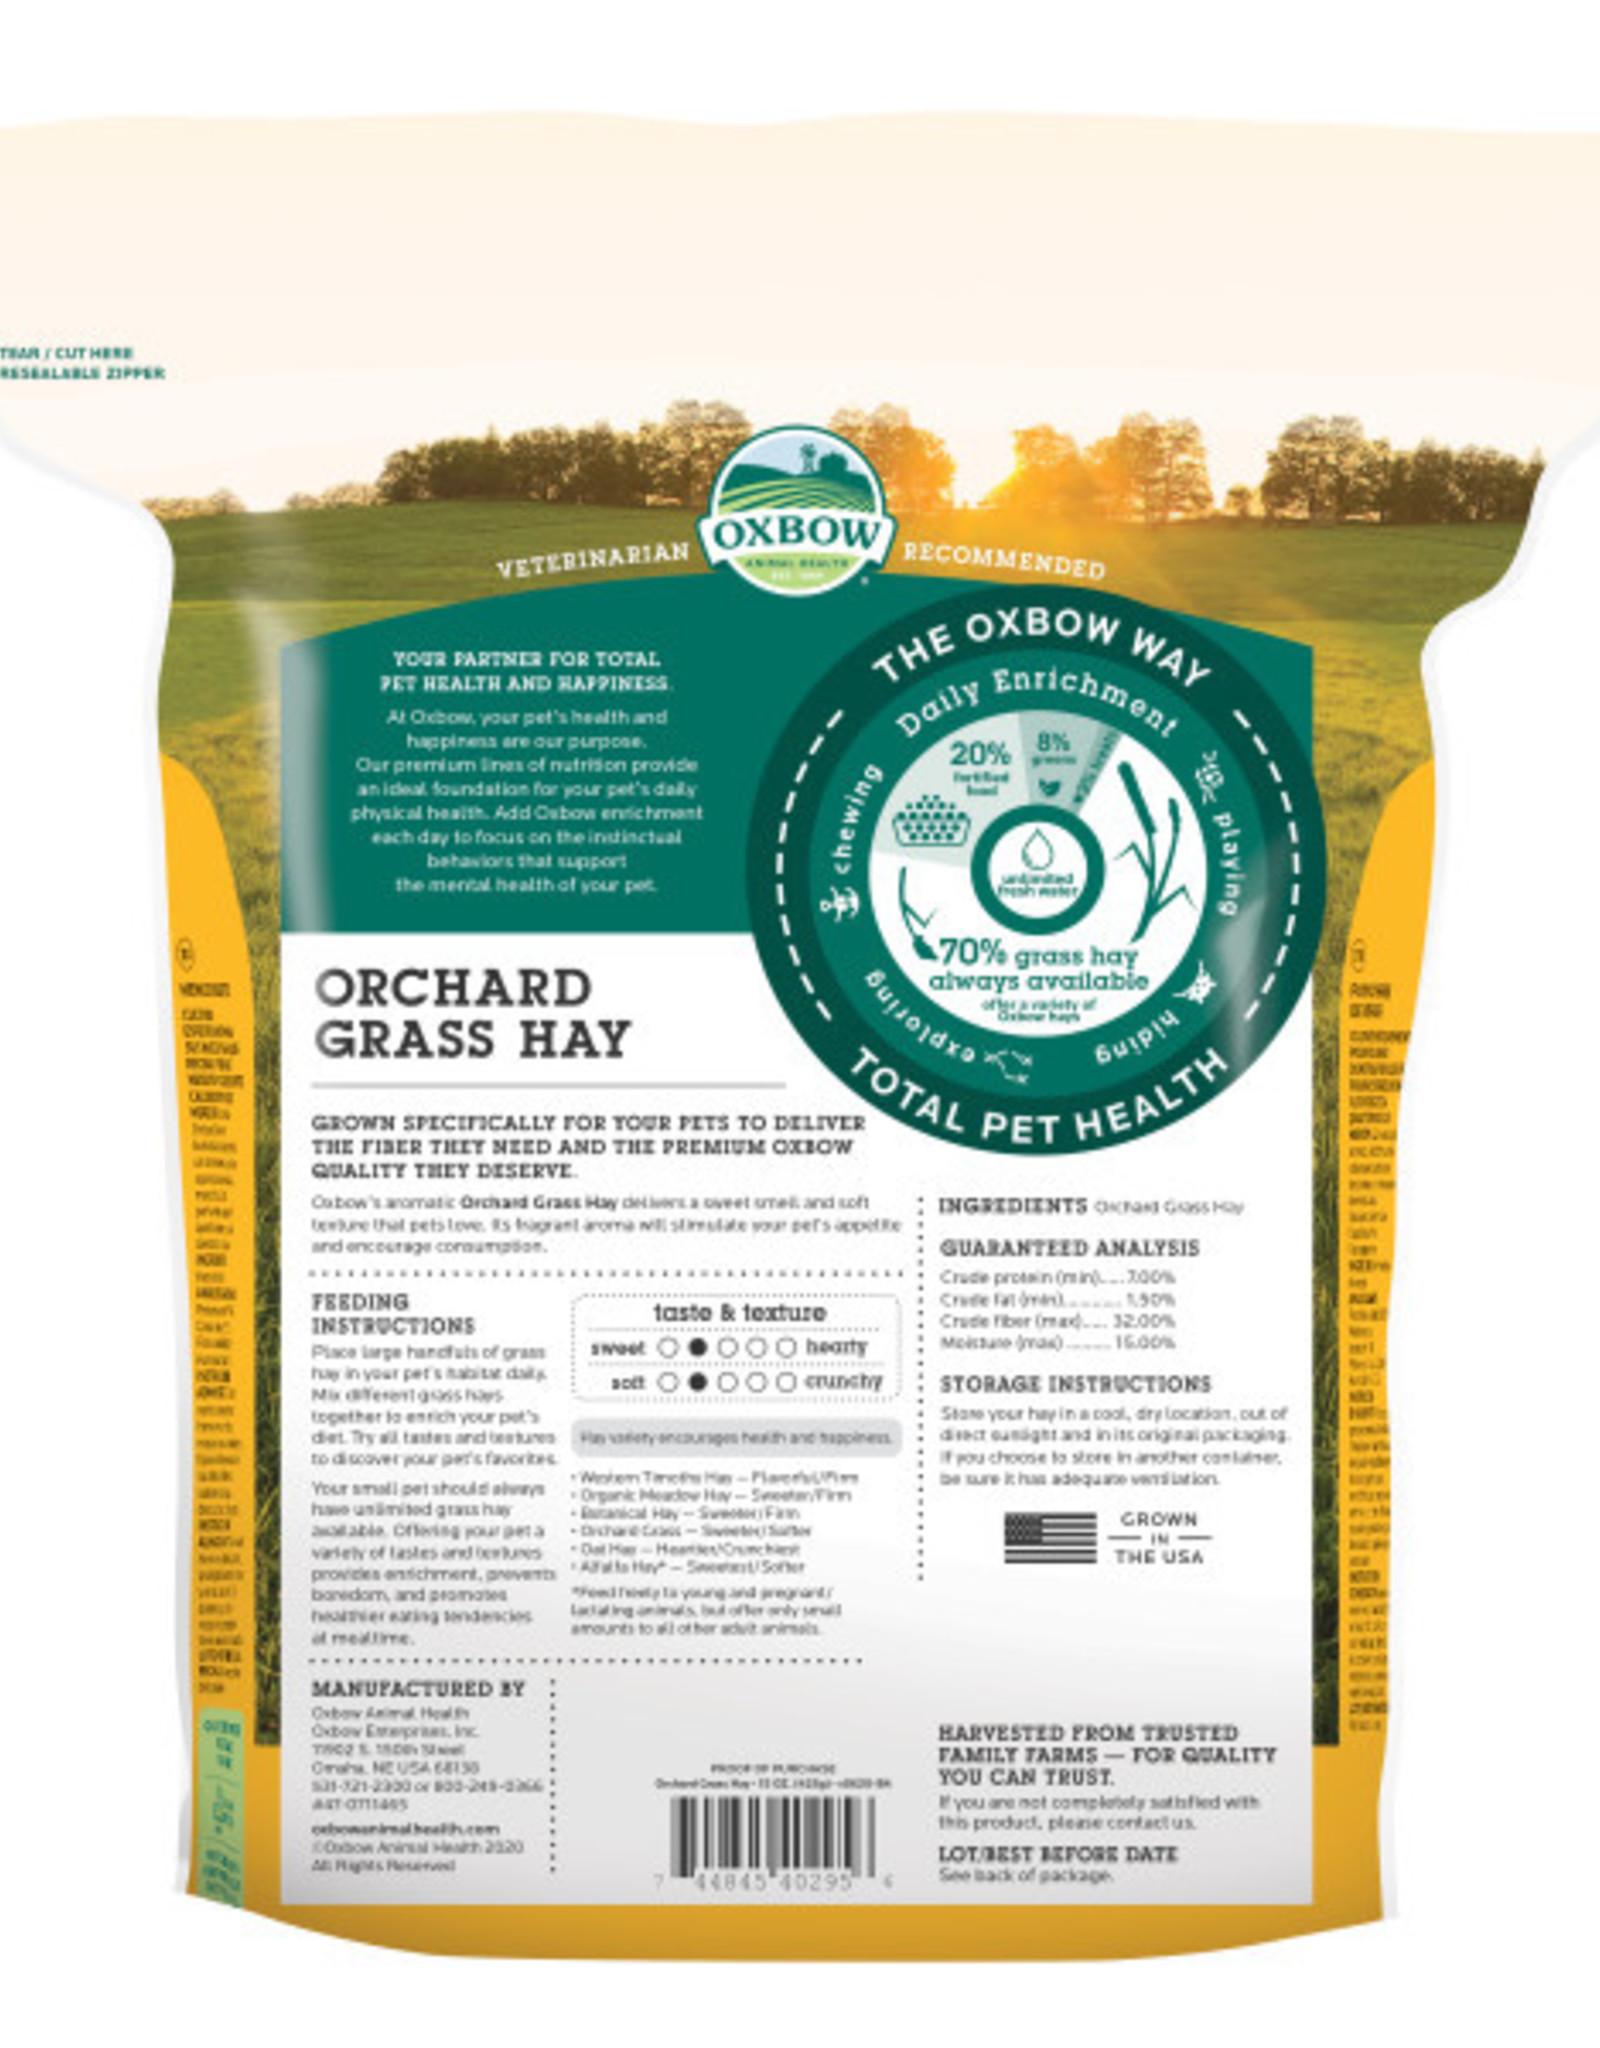 Oxbow Orchard Grass Hay 15 oz